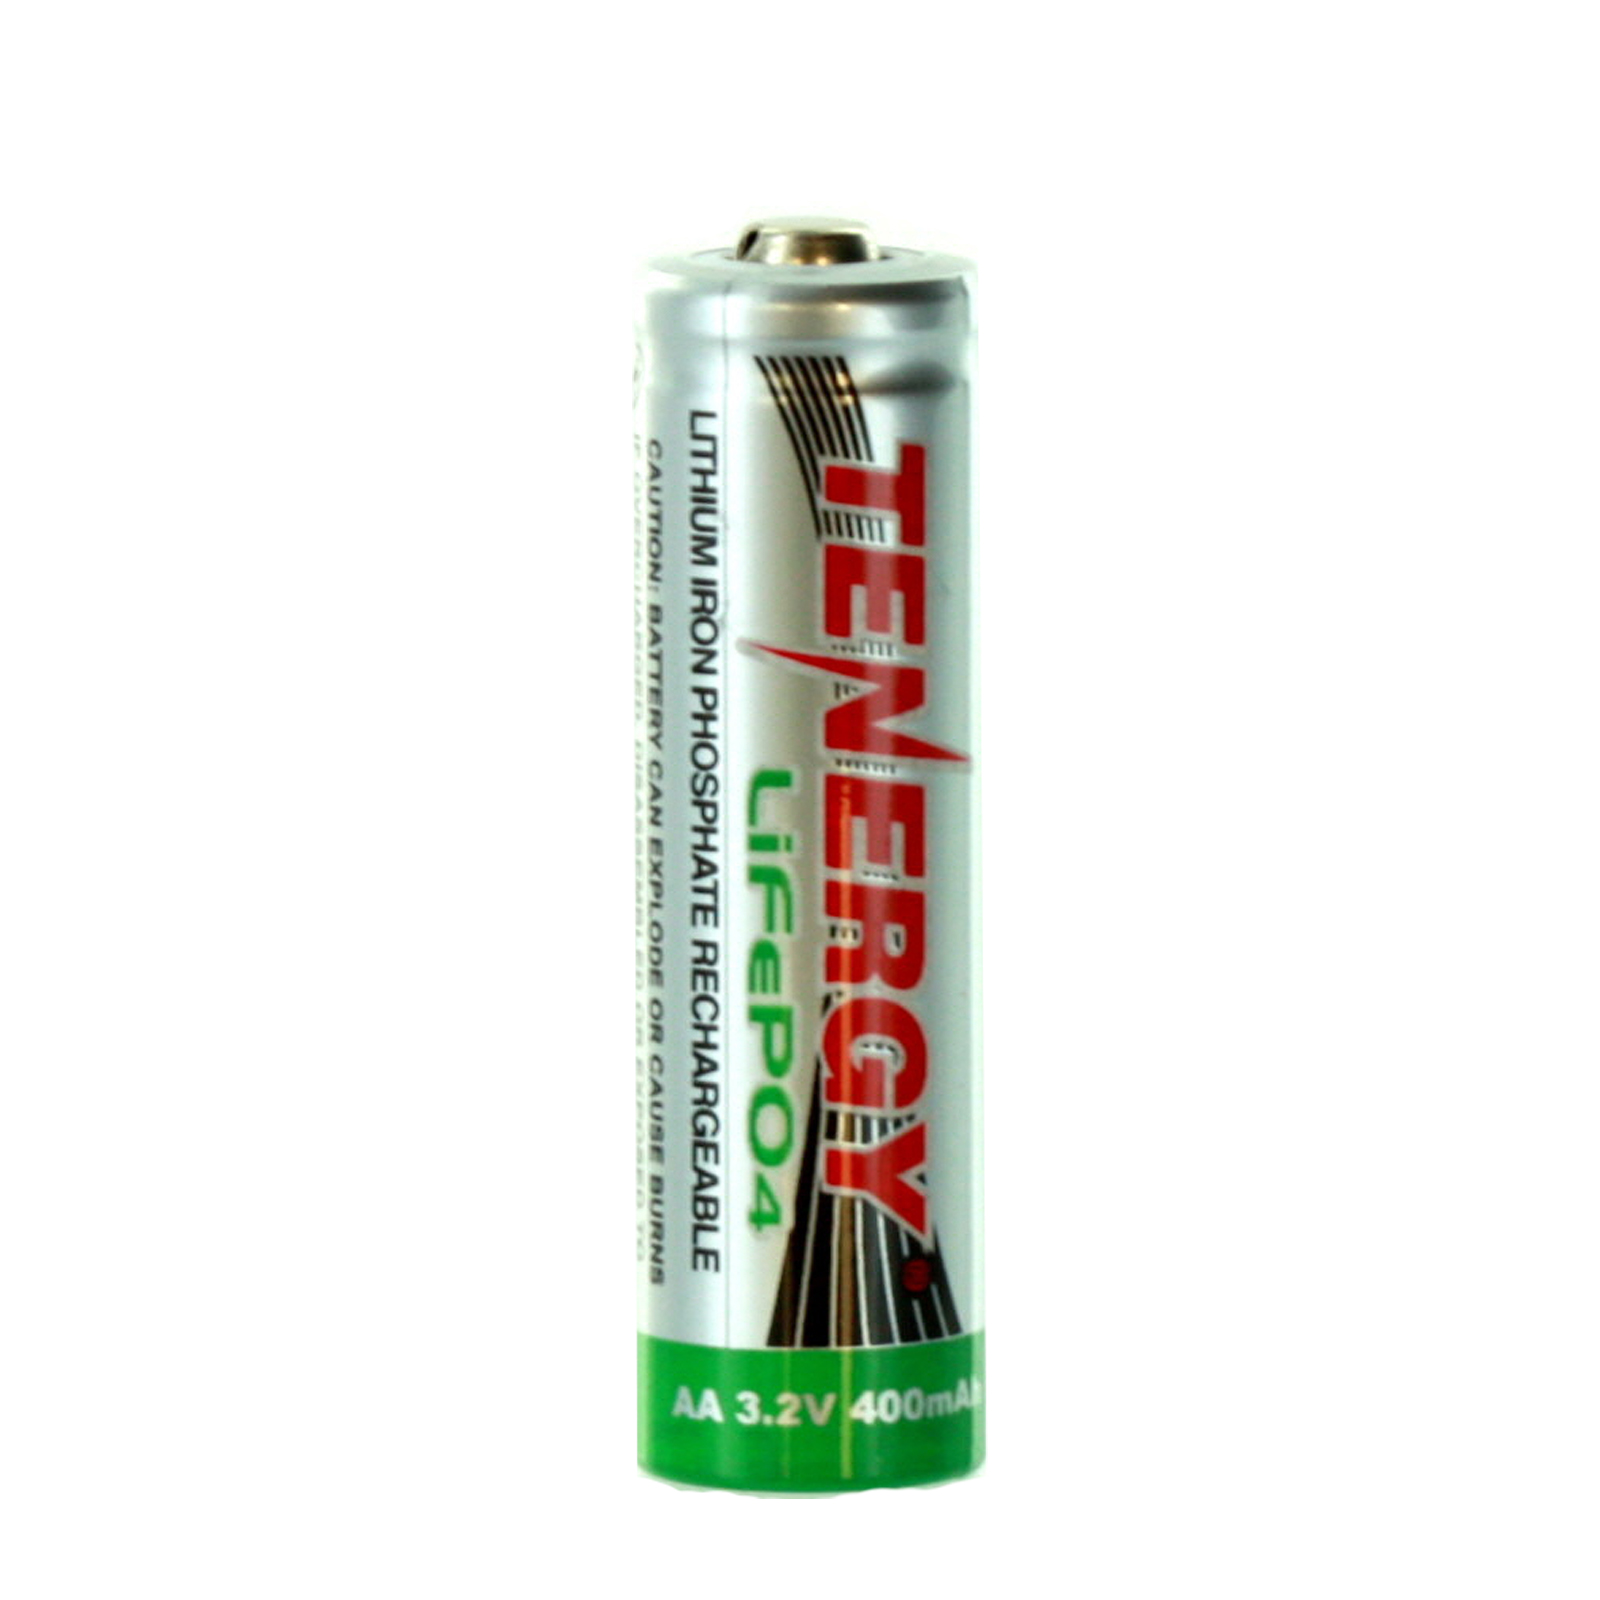 Tenergy 14500 AA 3.2V LiFePO4 Rechargeable Battery